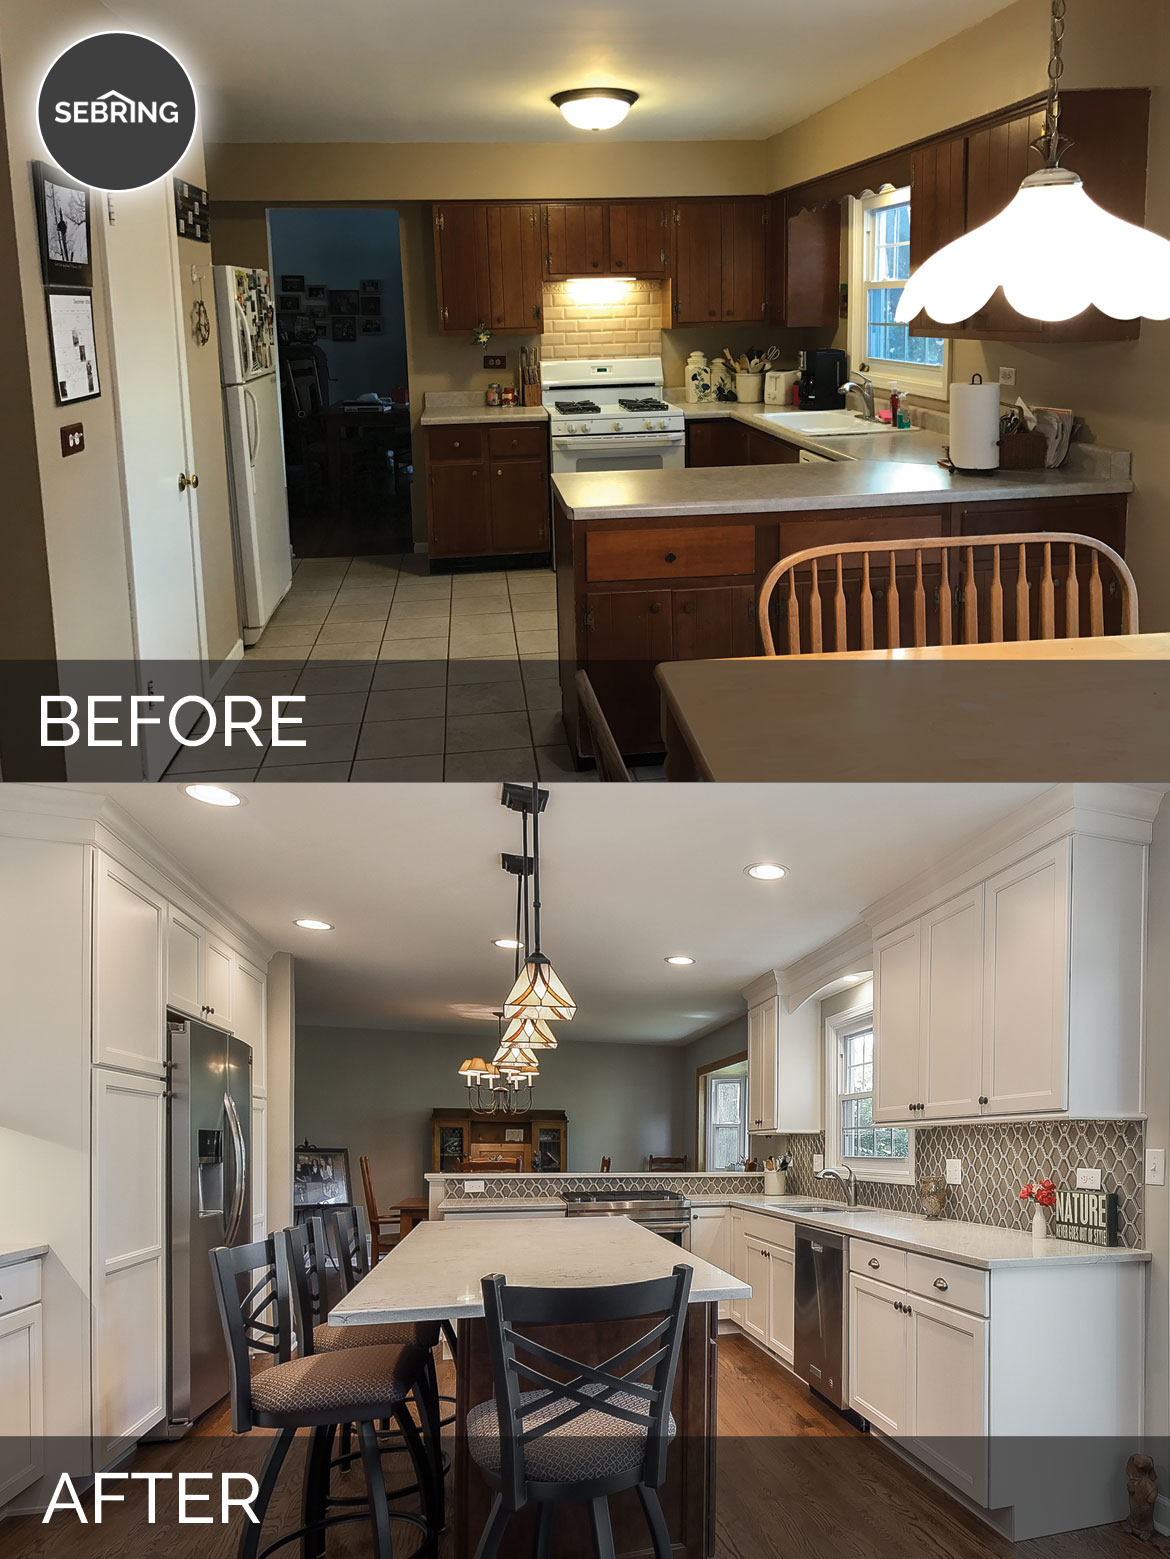 Before & After Kitchen Naperville - Sebring Design Build